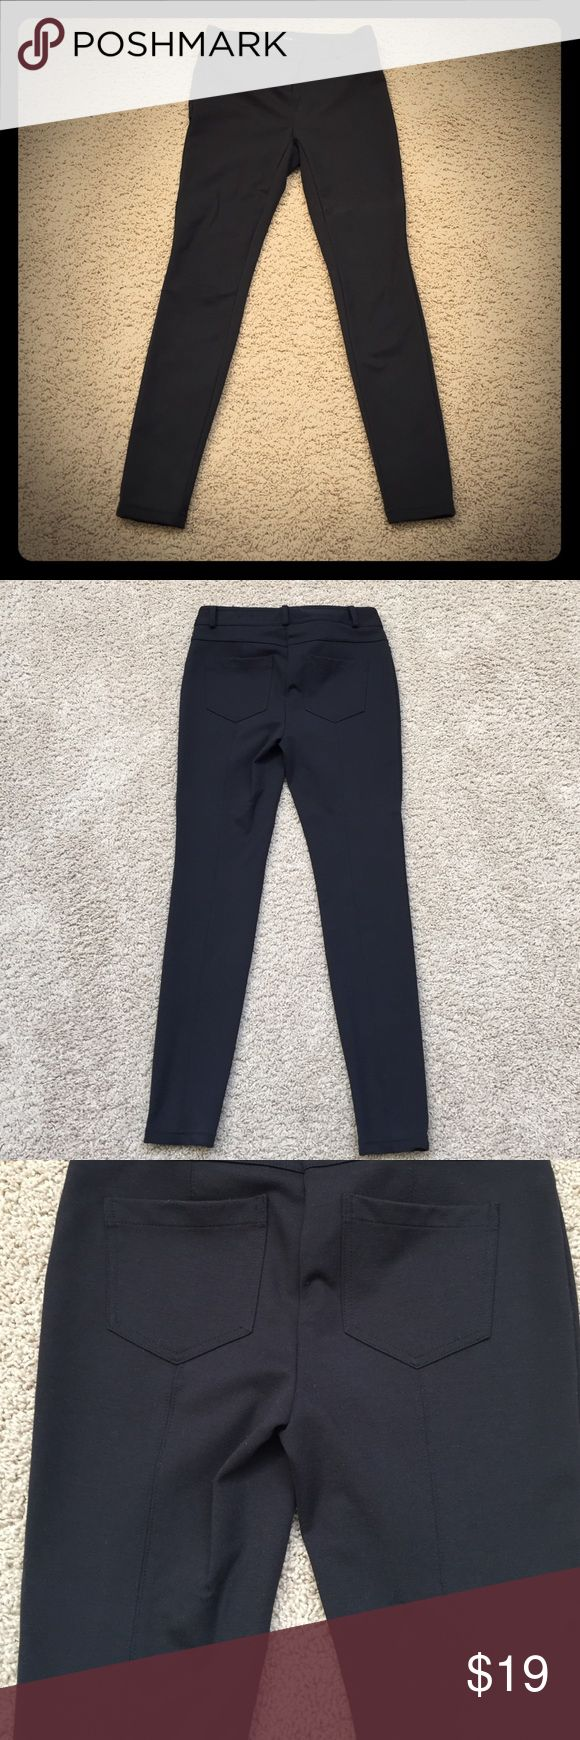 Black Style and Co pants Black Style & Co petite pants!  These pants are a fantastic material blend (72% polyester, 23% rayon, 5% spandex).  They have stylish pockets on the back and a line that goes down the middle of the back side of the pants.  They are in great condition! Style & Co Pants Skinny